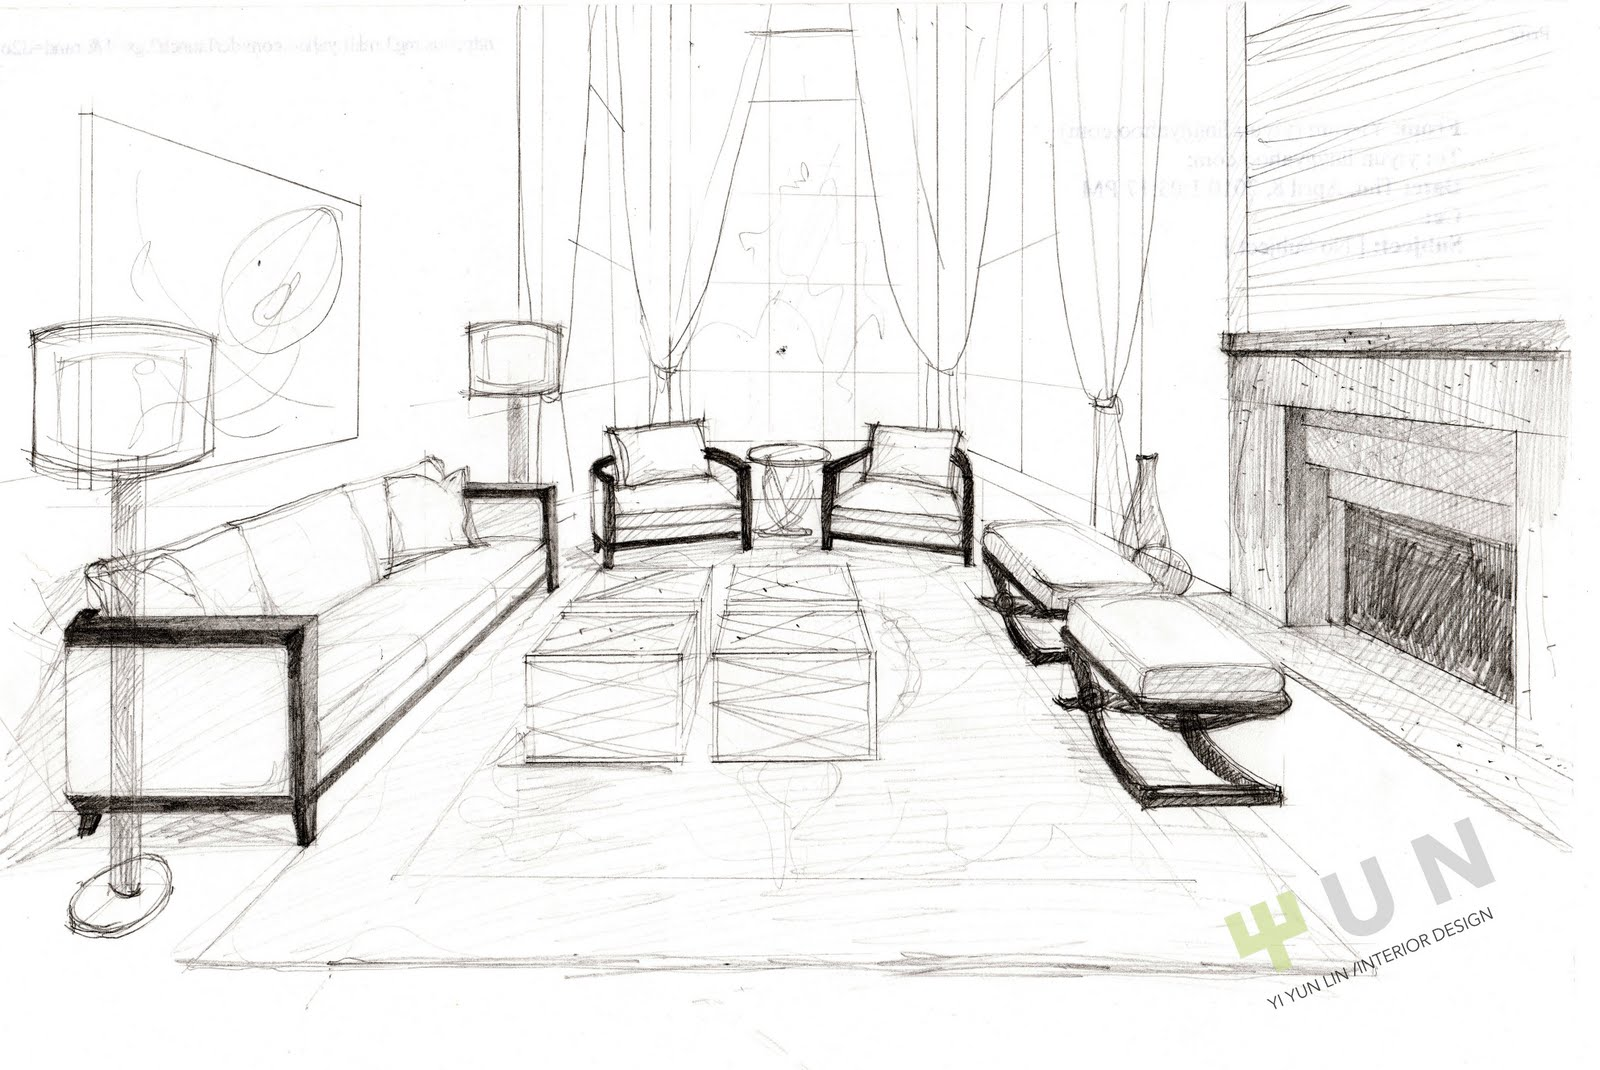 Interior design sketches wallpress 1080p hd desktop Room sketches interior design